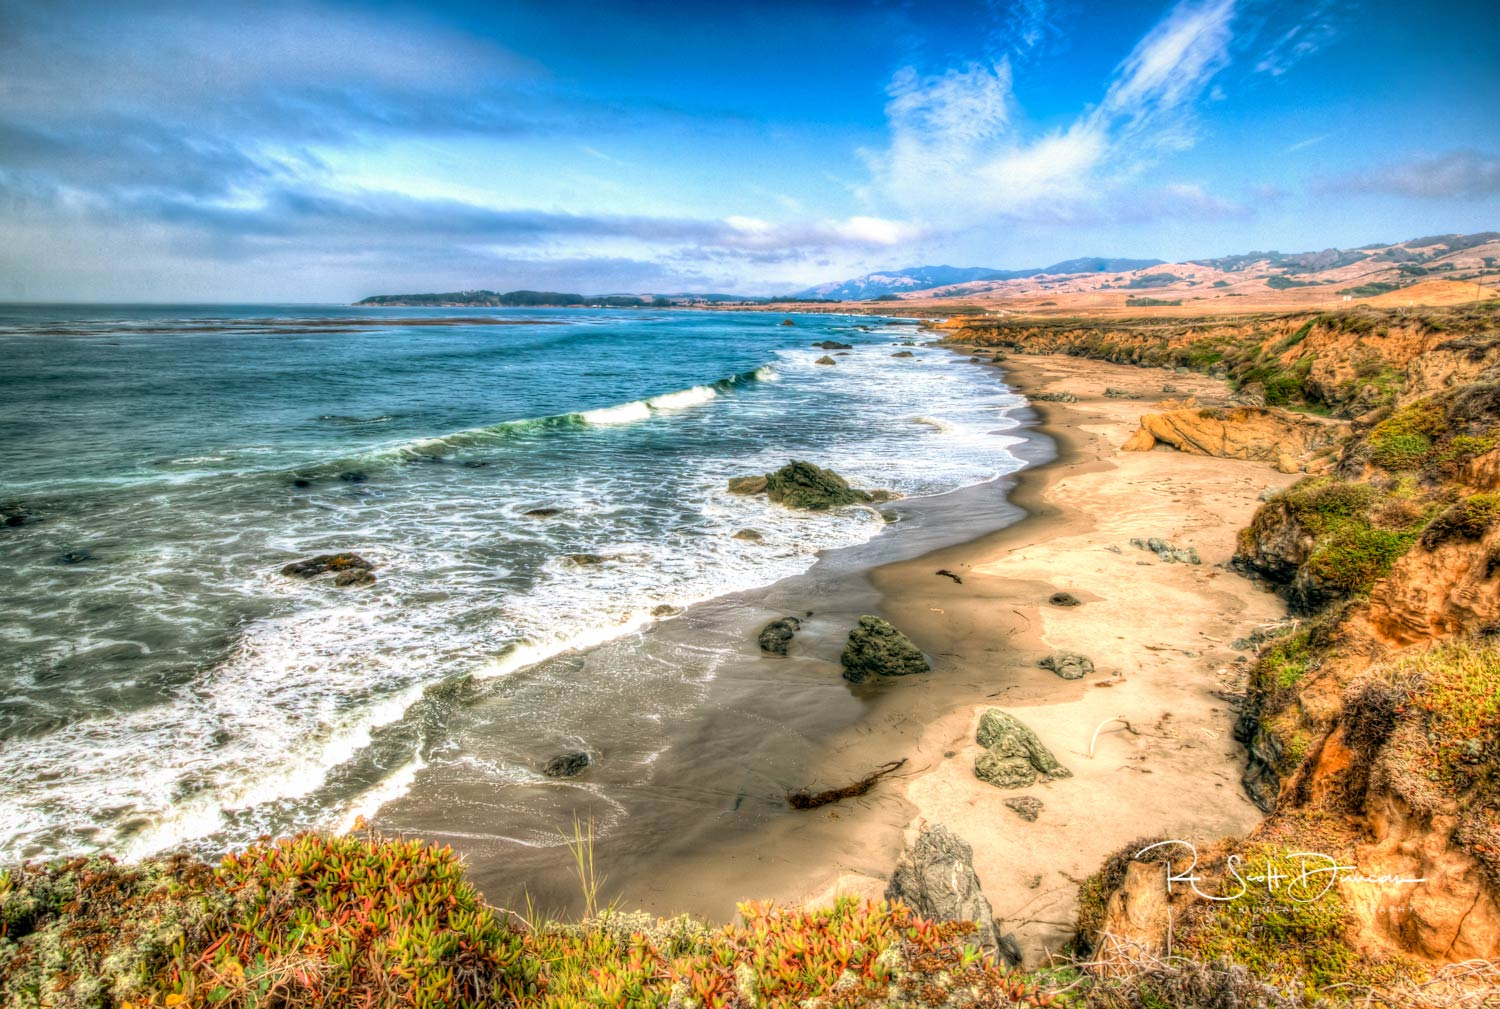 California's Central Coastal Shoreline